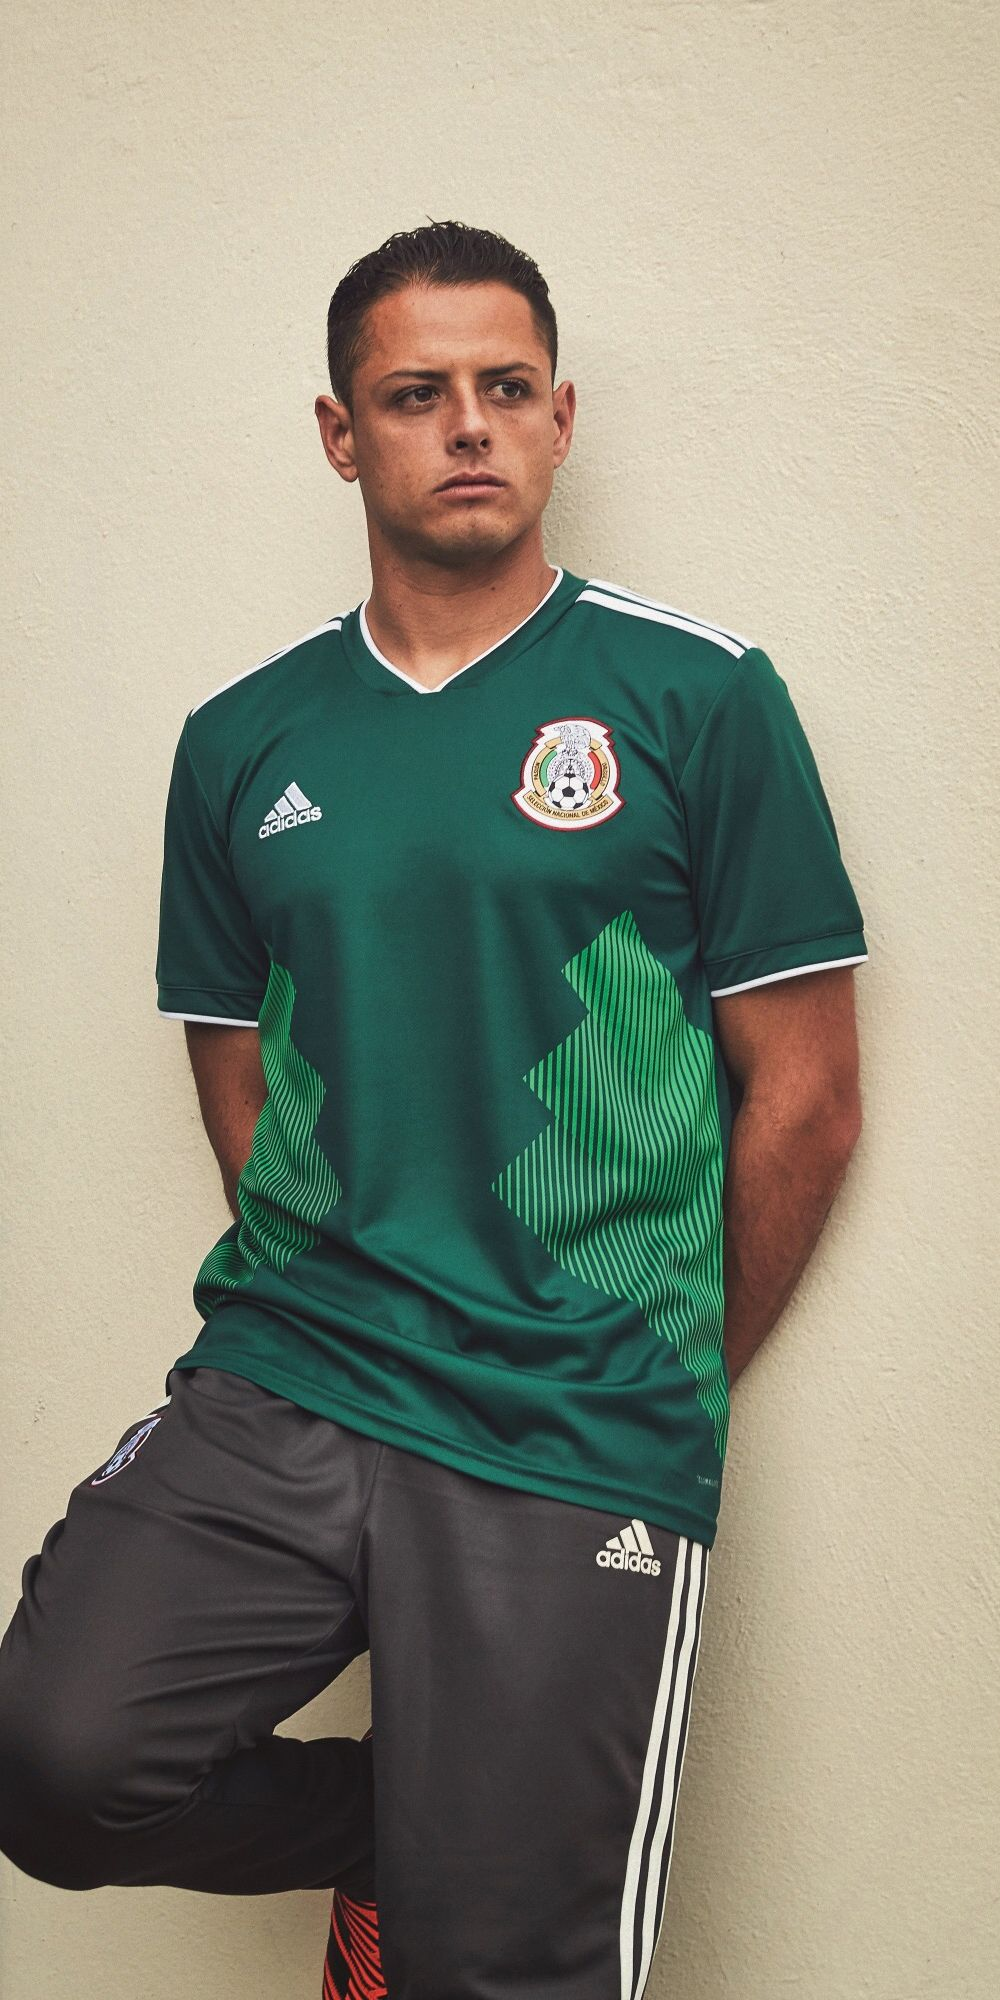 Chicharito in the adidas 2018 Mexico home jersey  f6b823984